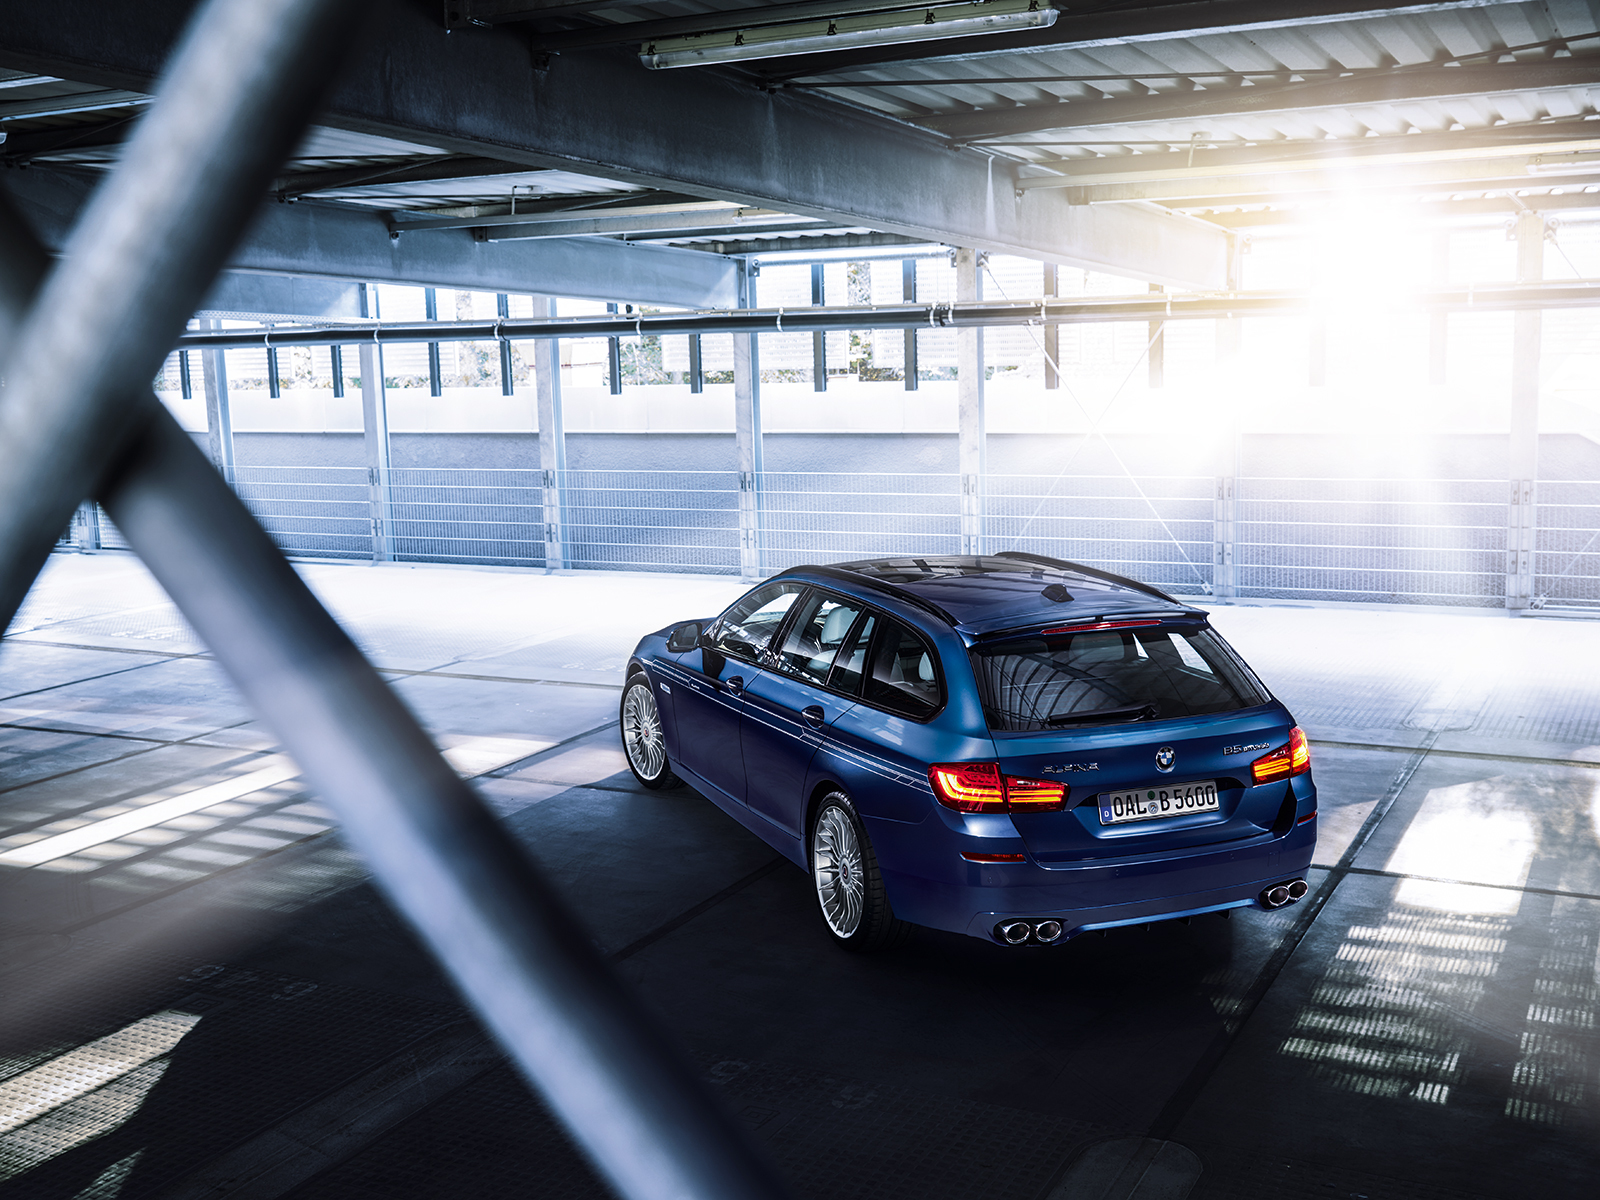 Alpina B5 Biturbo BMW Announce the 2016 Package which is more Powerful